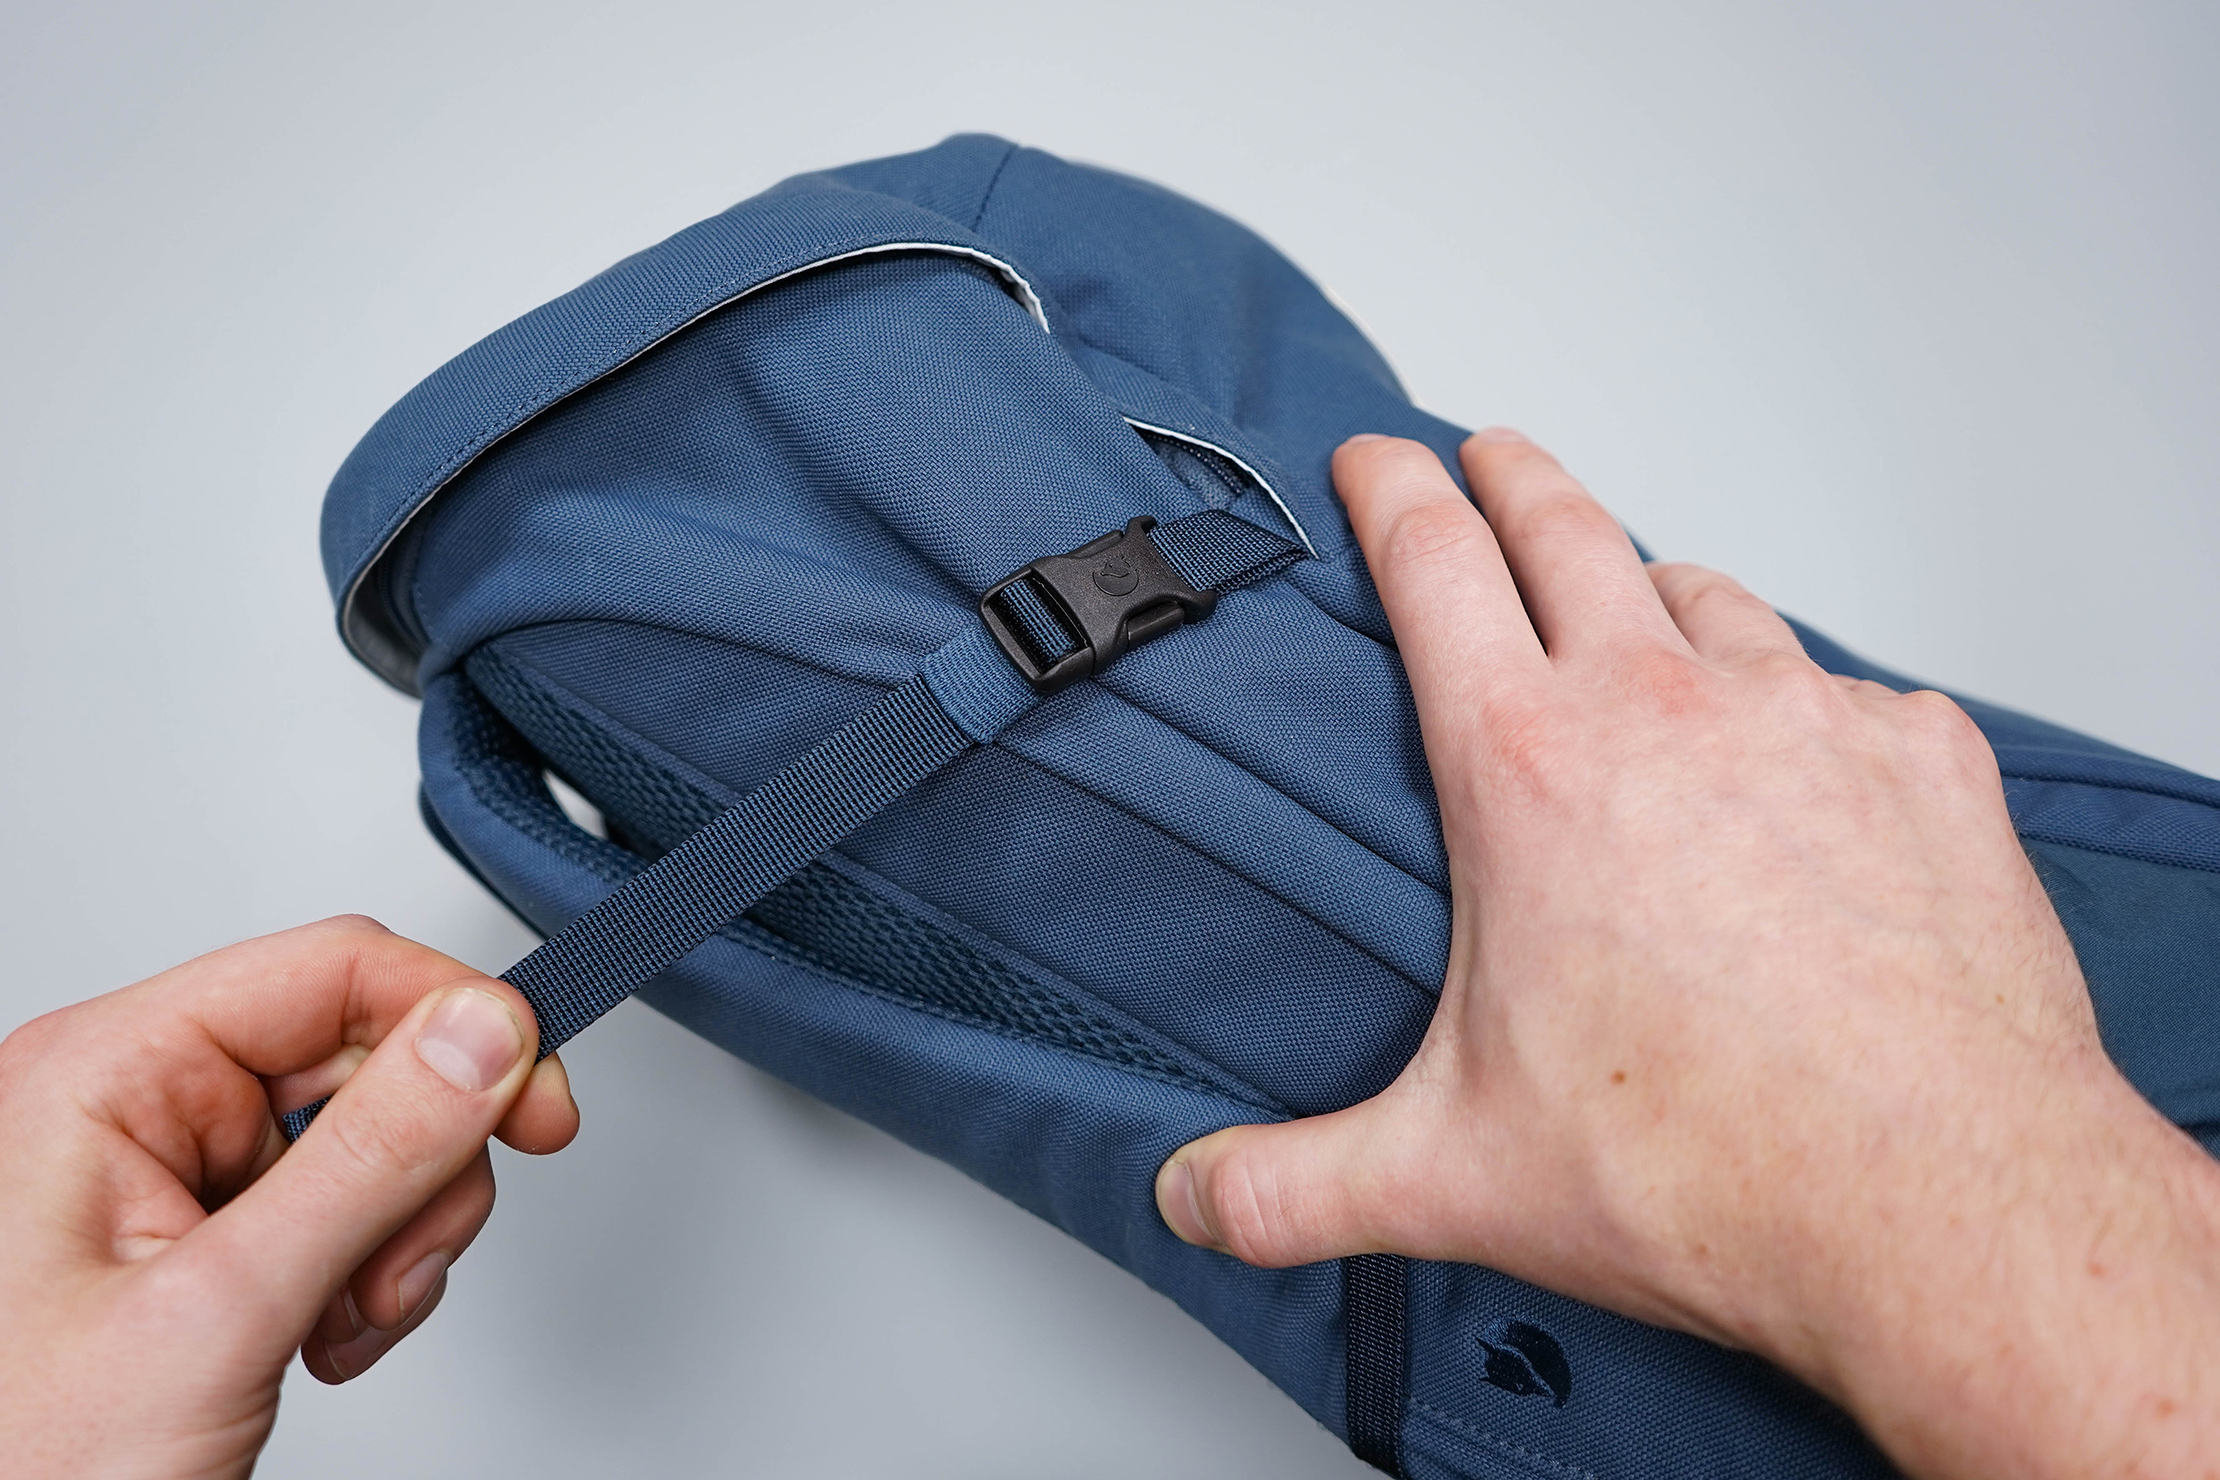 Fjallraven Ulvo 23 Backpack Compressed